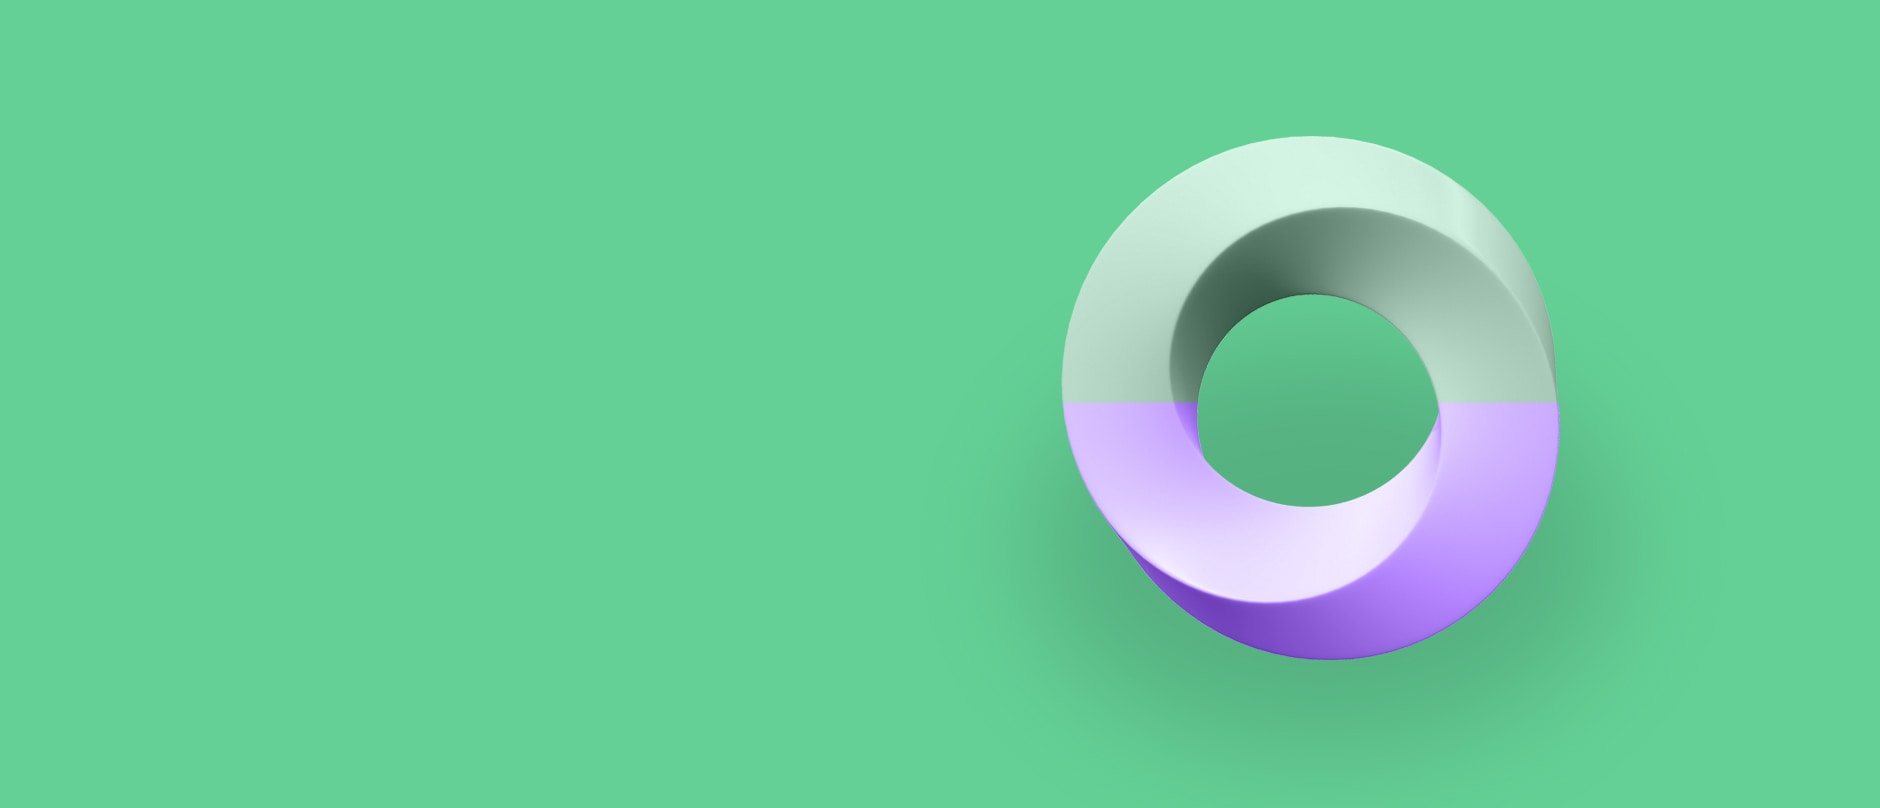 white and purple twisted circle on right side of green background